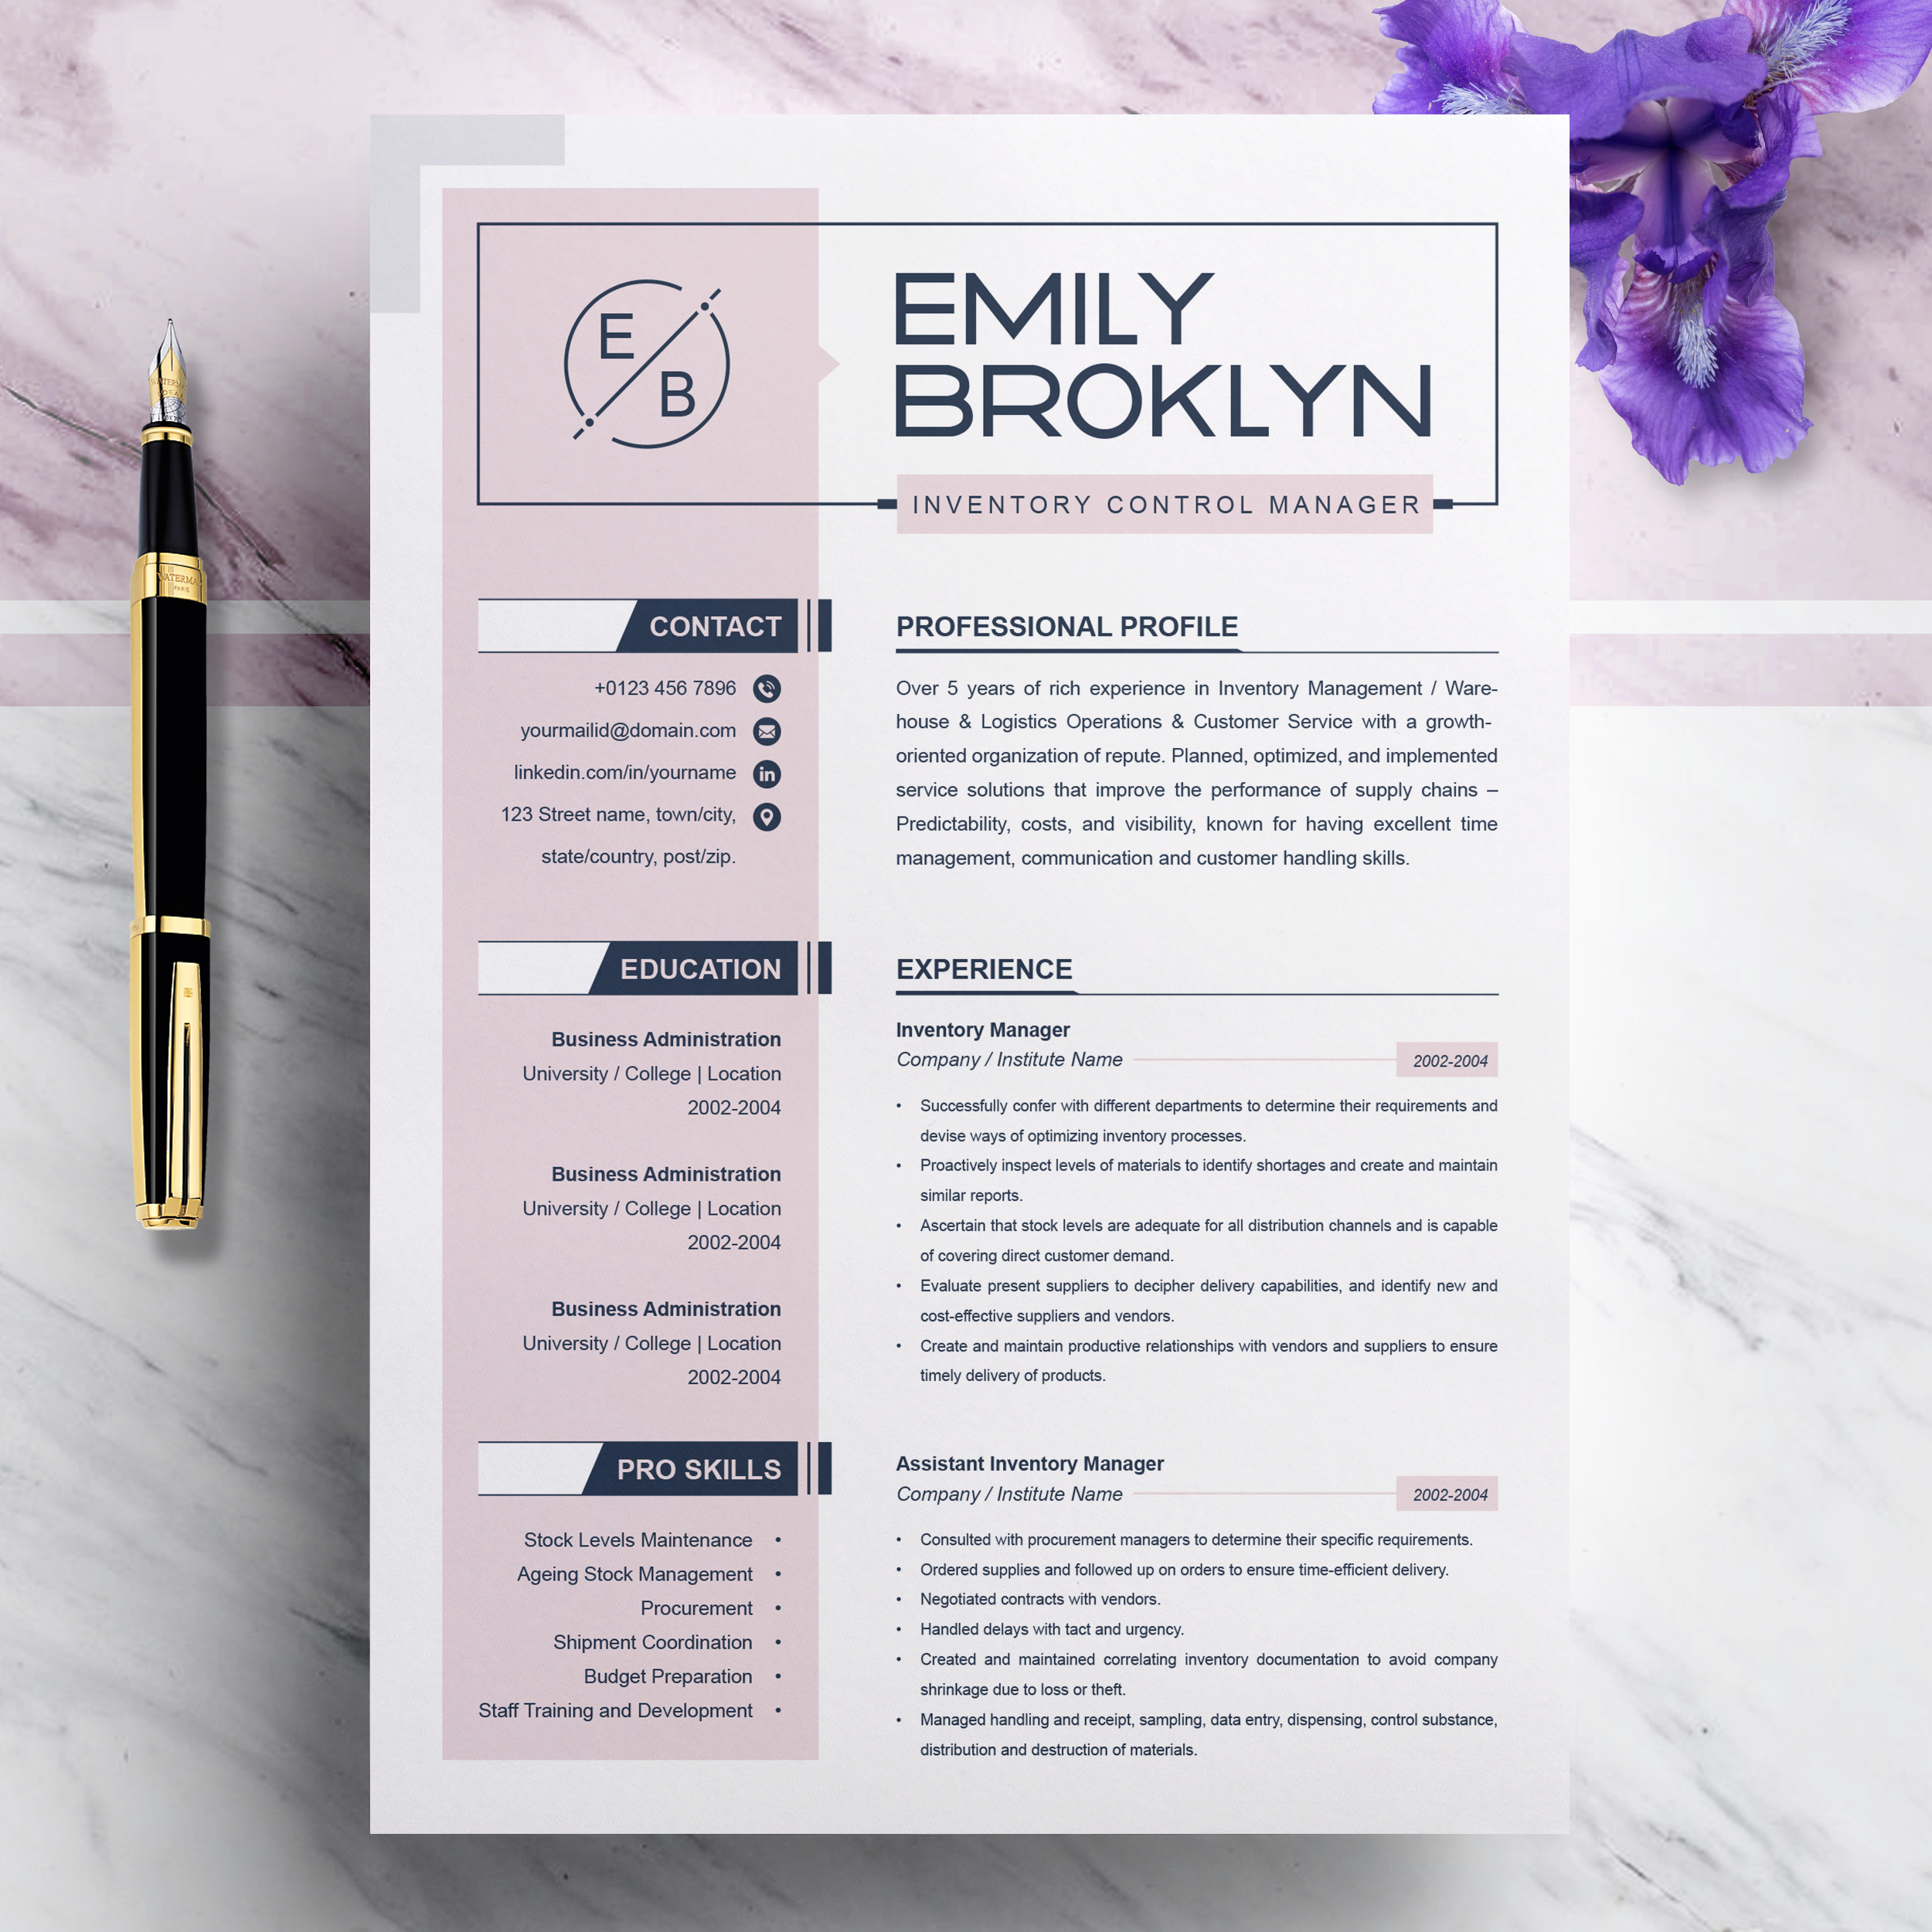 Creative Resume from pixelify.nyc3.cdn.digitaloceanspaces.com